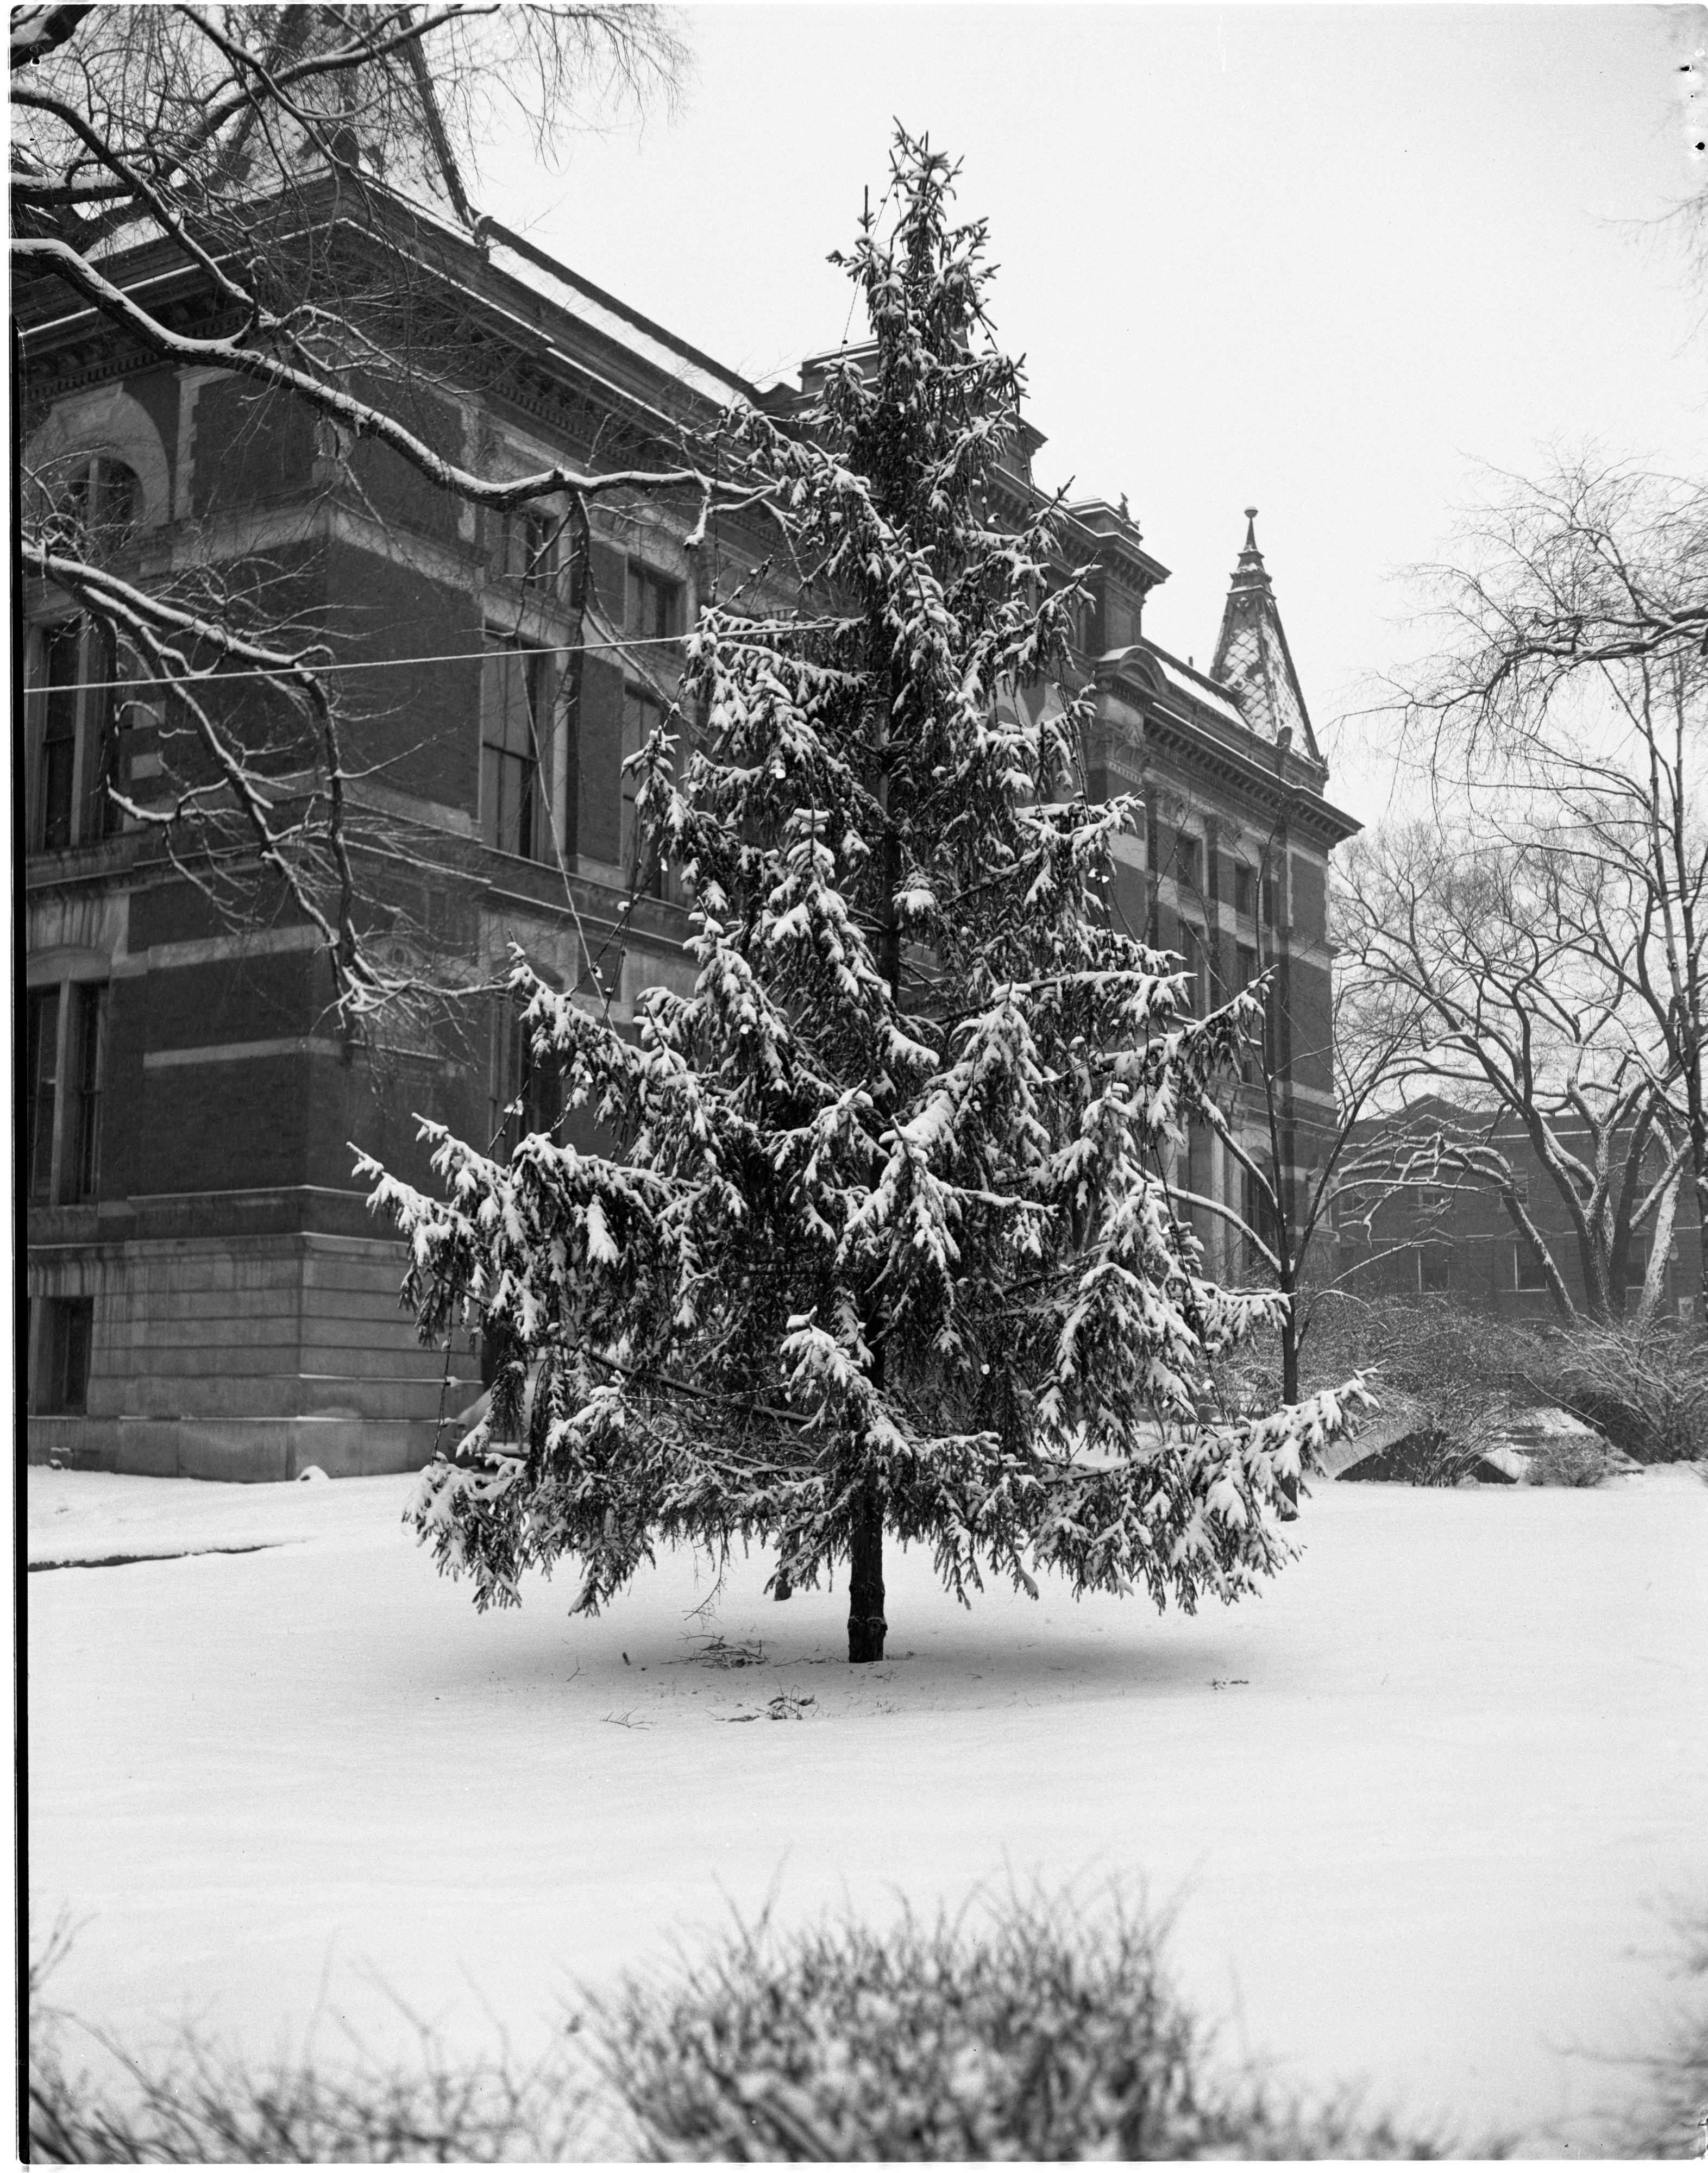 Ann Arbor's Municipal Christmas Tree On The Lawn Of The Courthouse, December 1952 image